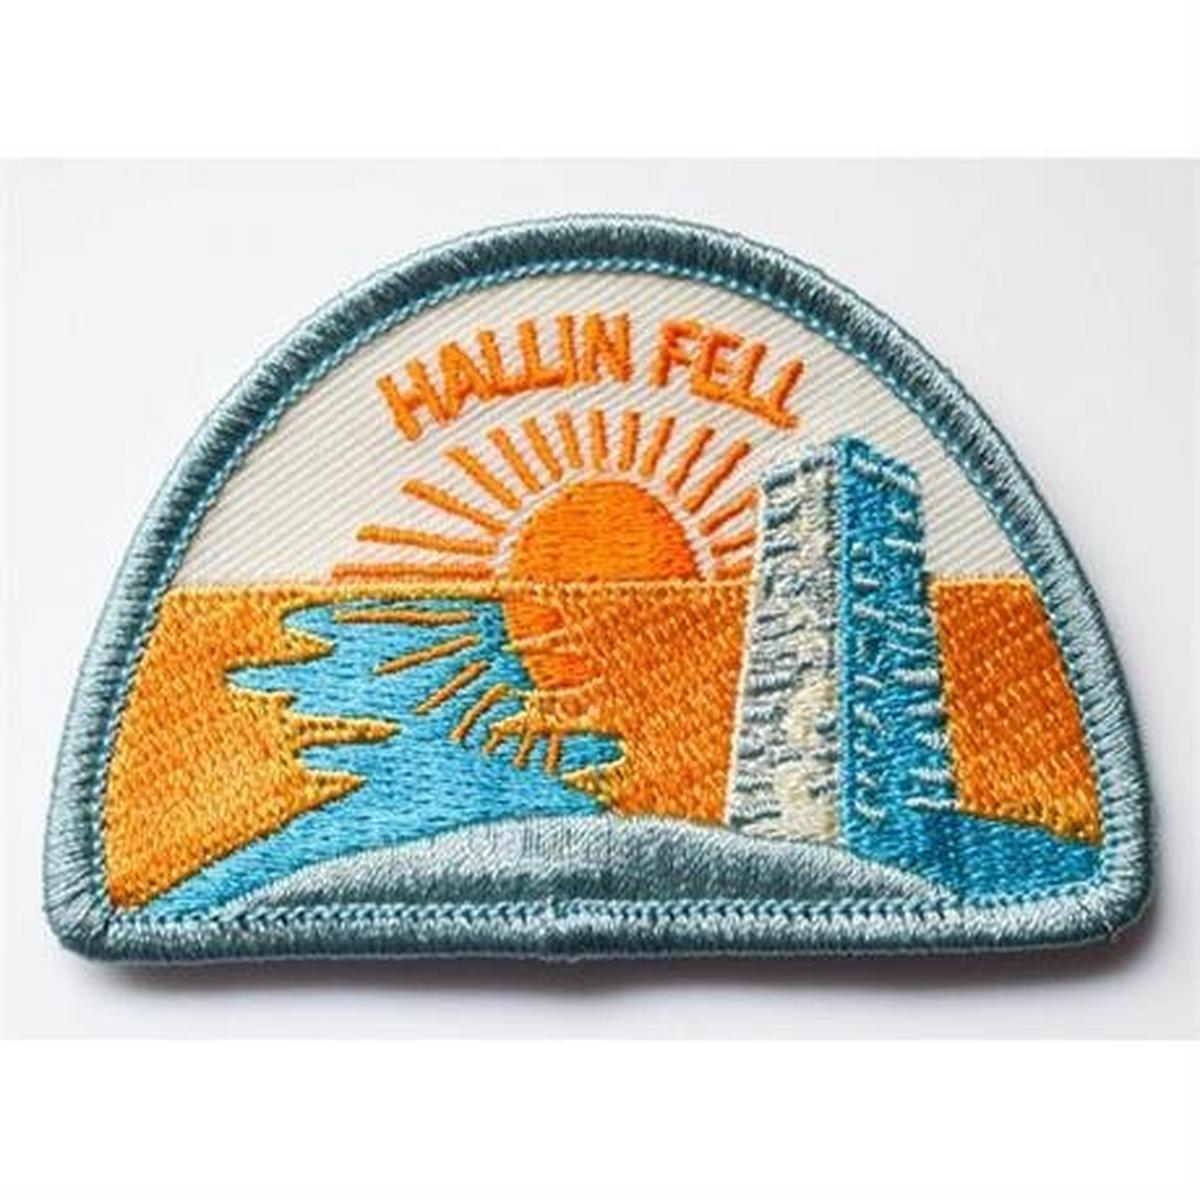 Conquer Lake District Patch - Hallin Fell